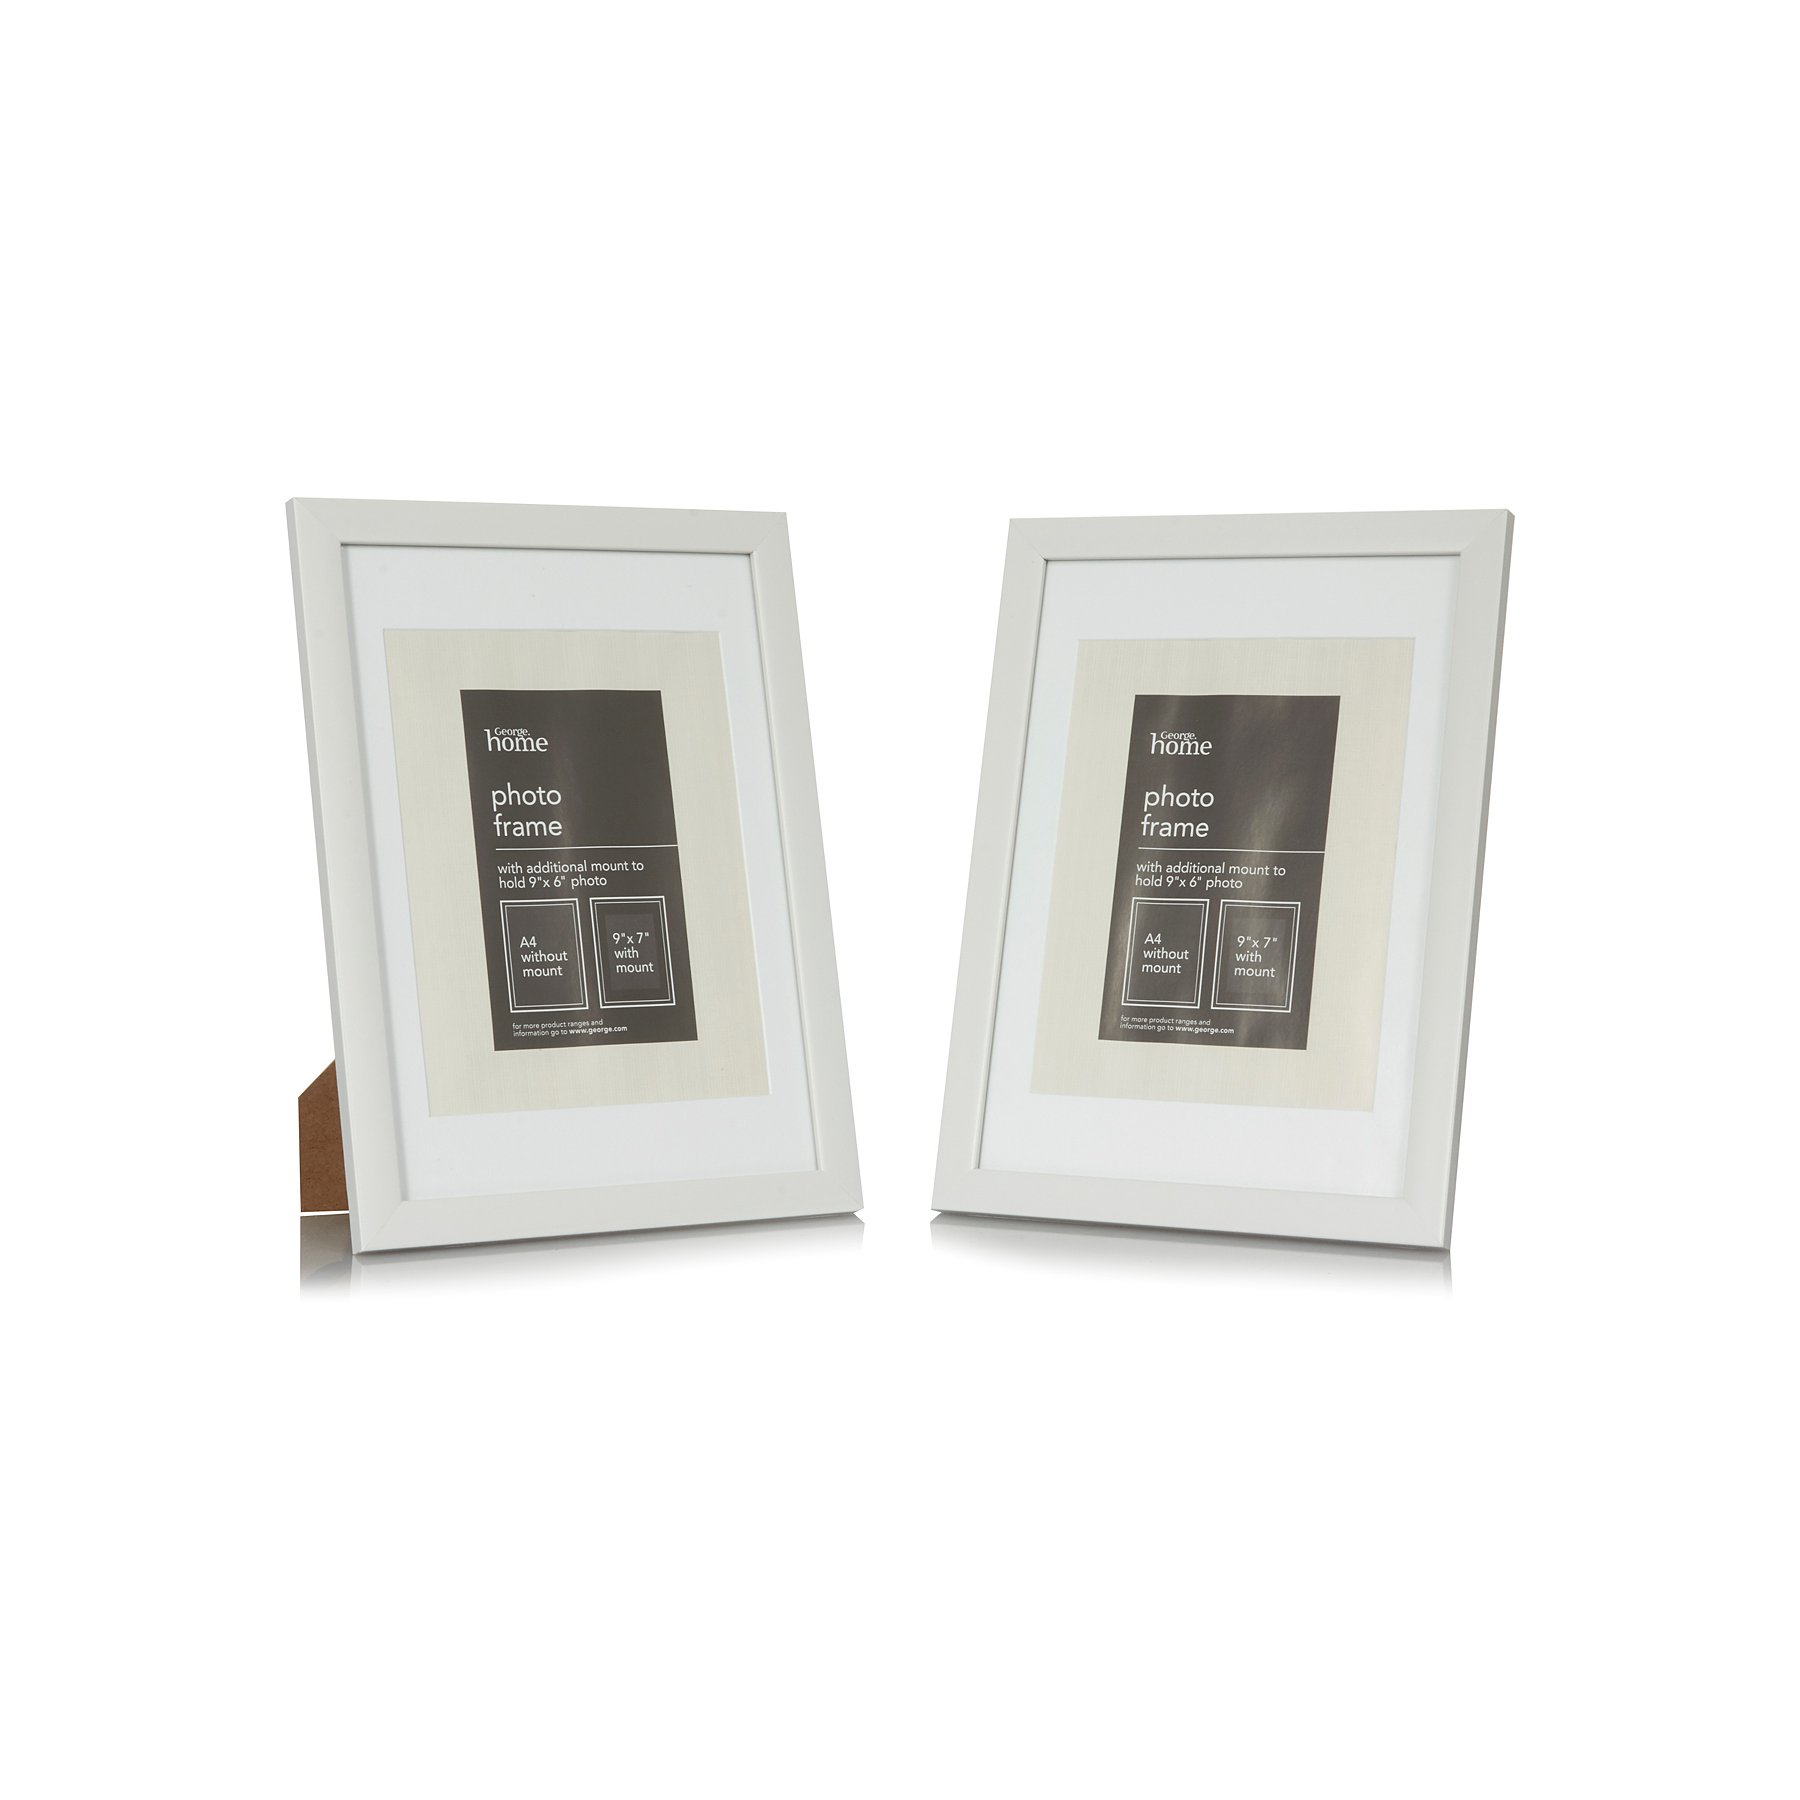 George Home Photo Frame 9 X 7 Inch 2 Pack Photo Frames